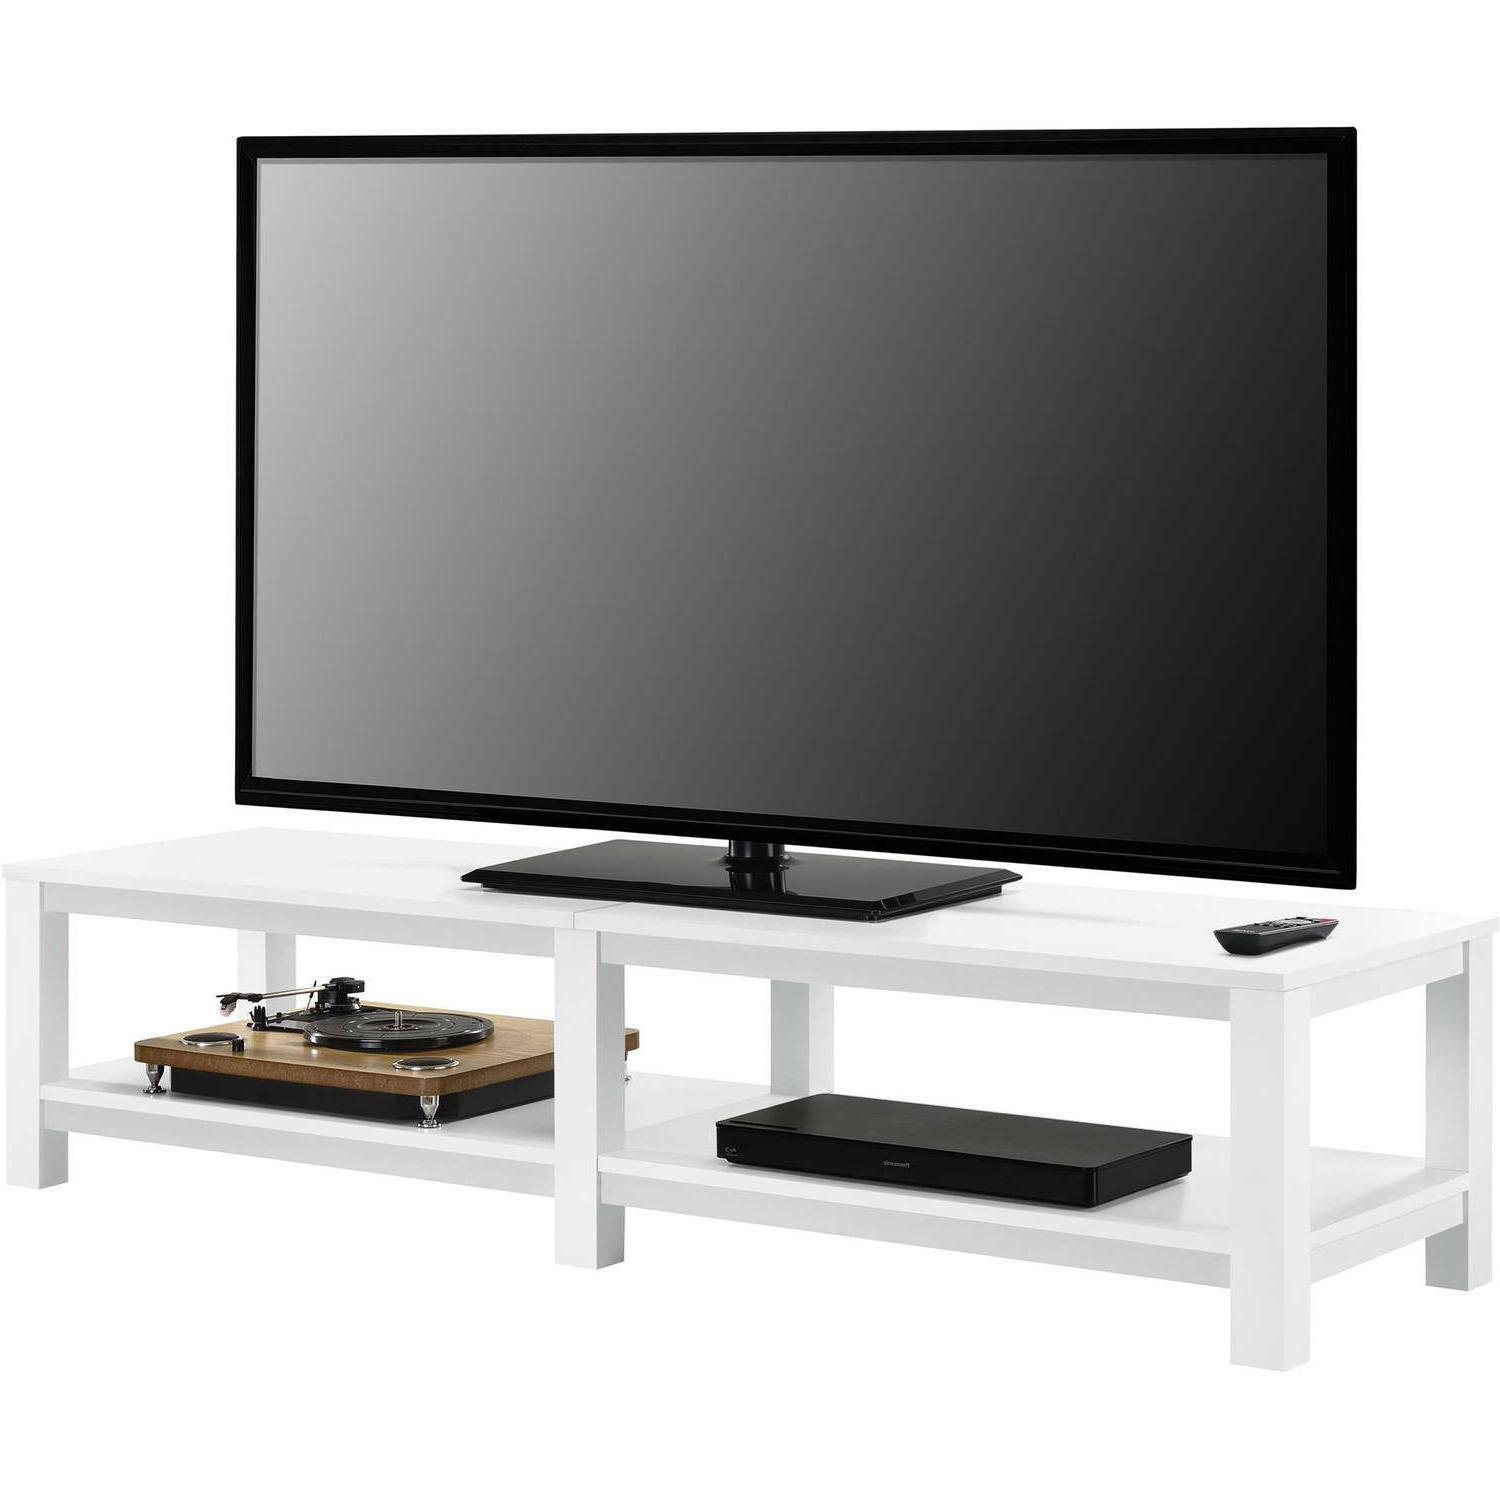 """Mainstays Parsons TV Stand TVs to 65"""", Multiple Colors"""